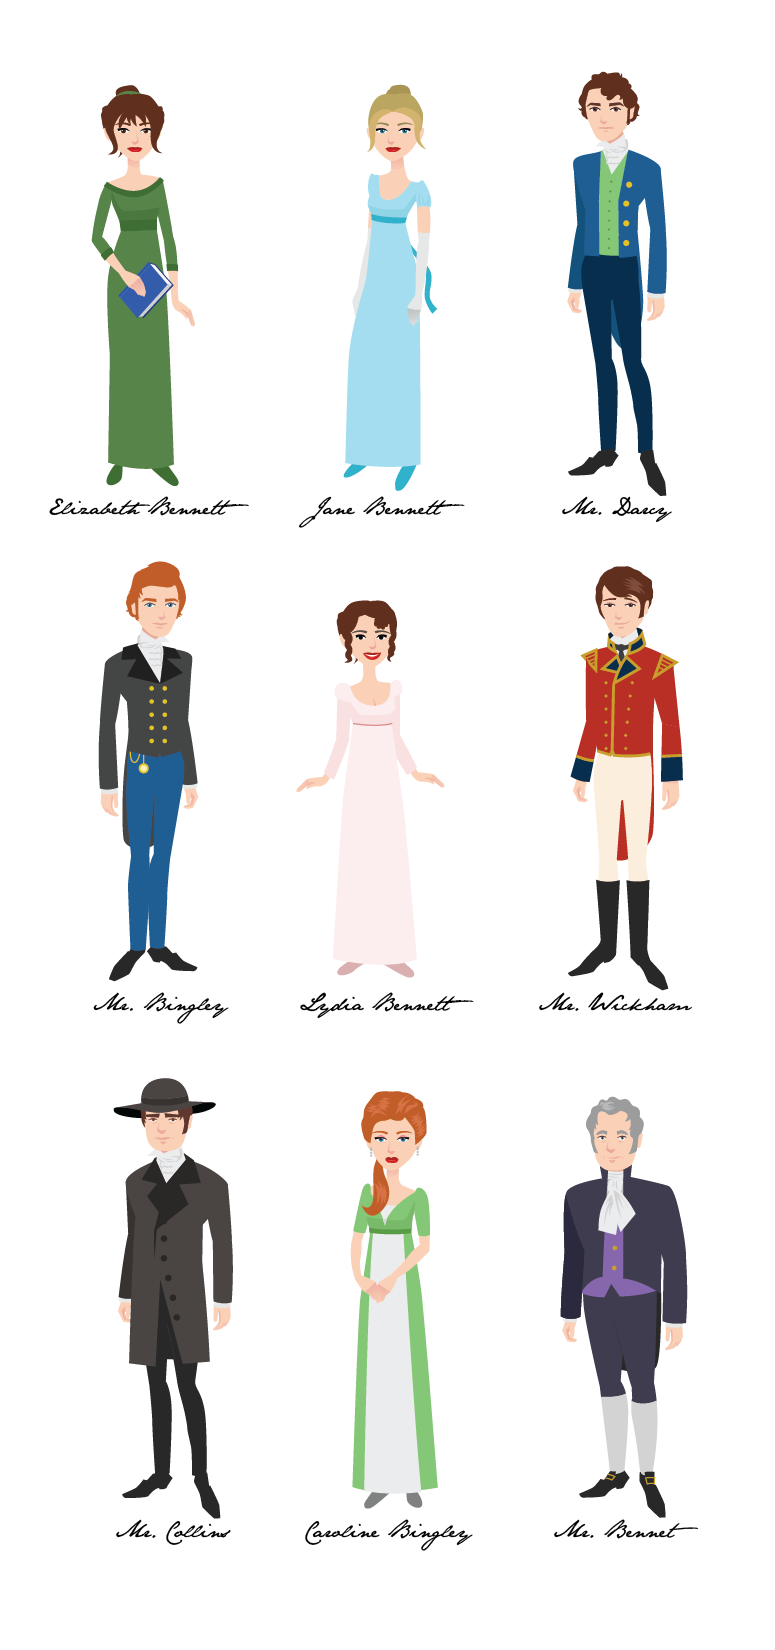 austen characters clip art from com shop girlfanart pride  9 pride prejudice characters by girlfanart on